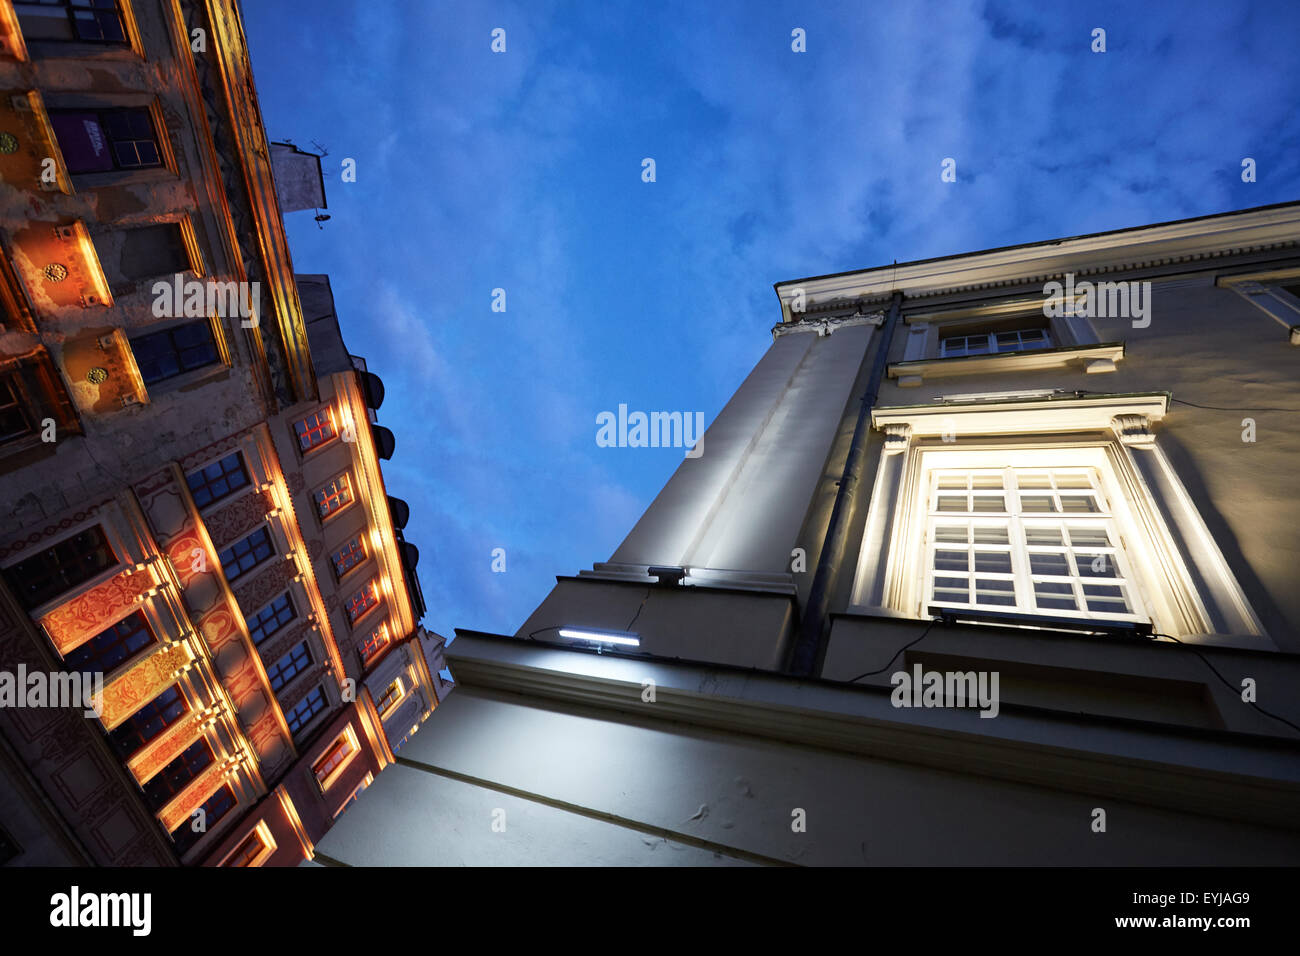 LED illumination in Lublin's old town, Poland, Europe - Stock Image